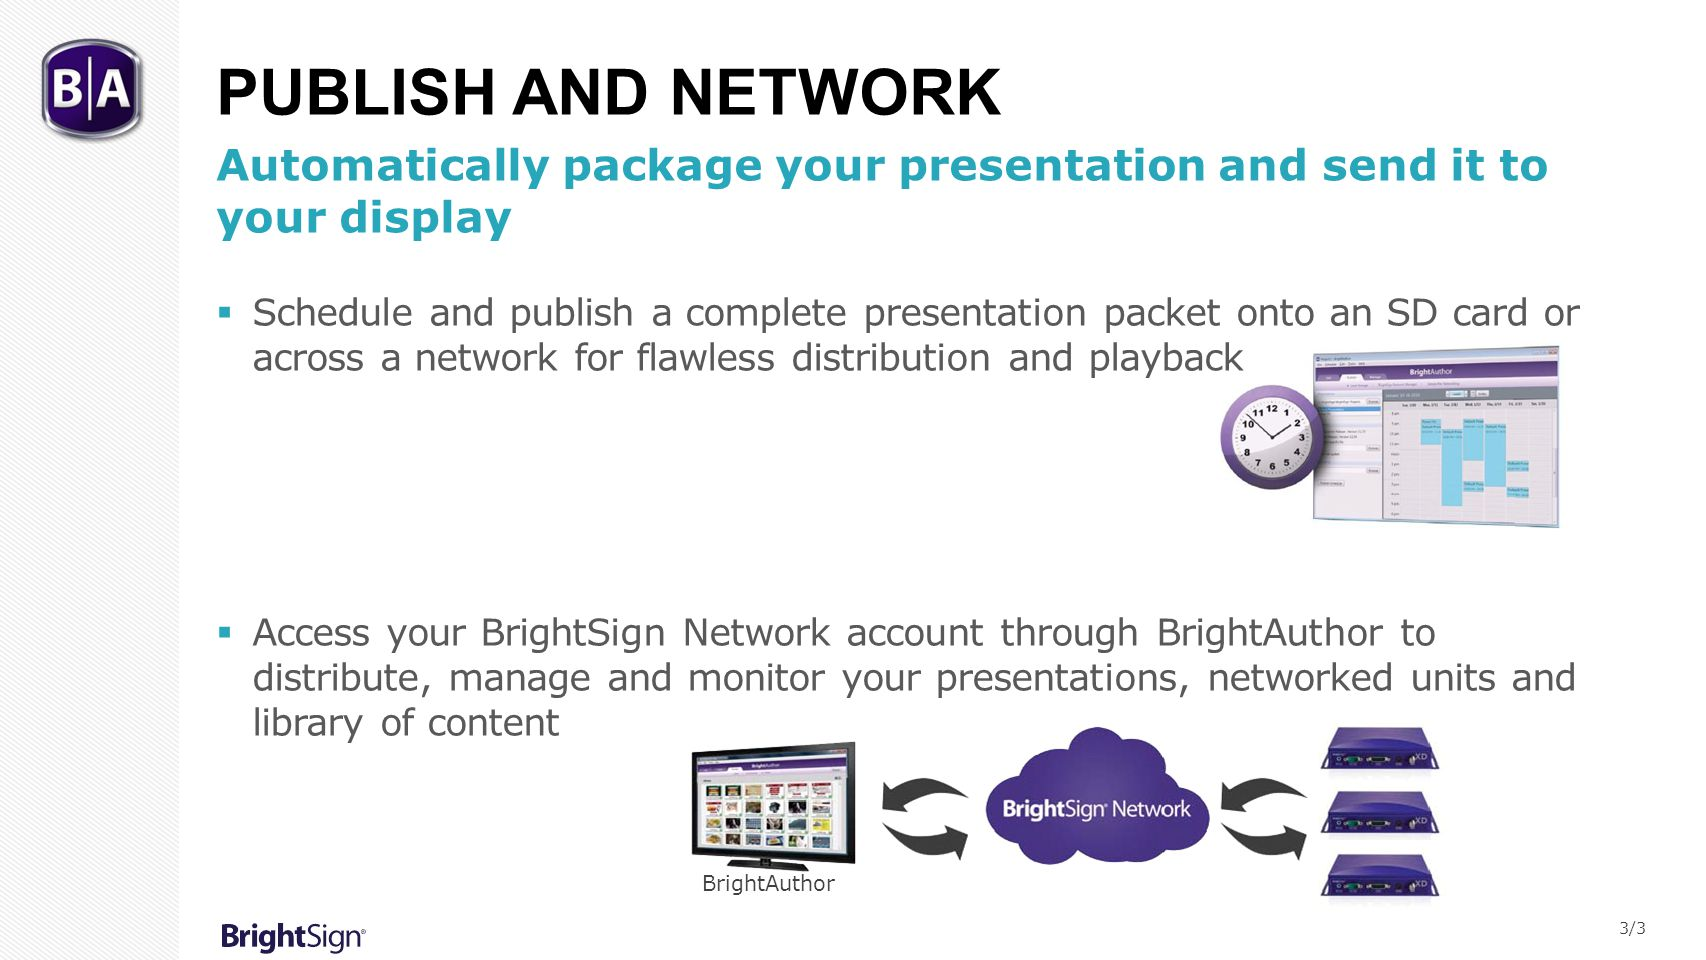 Publish and Network Automatically package your presentation and send it to your display.